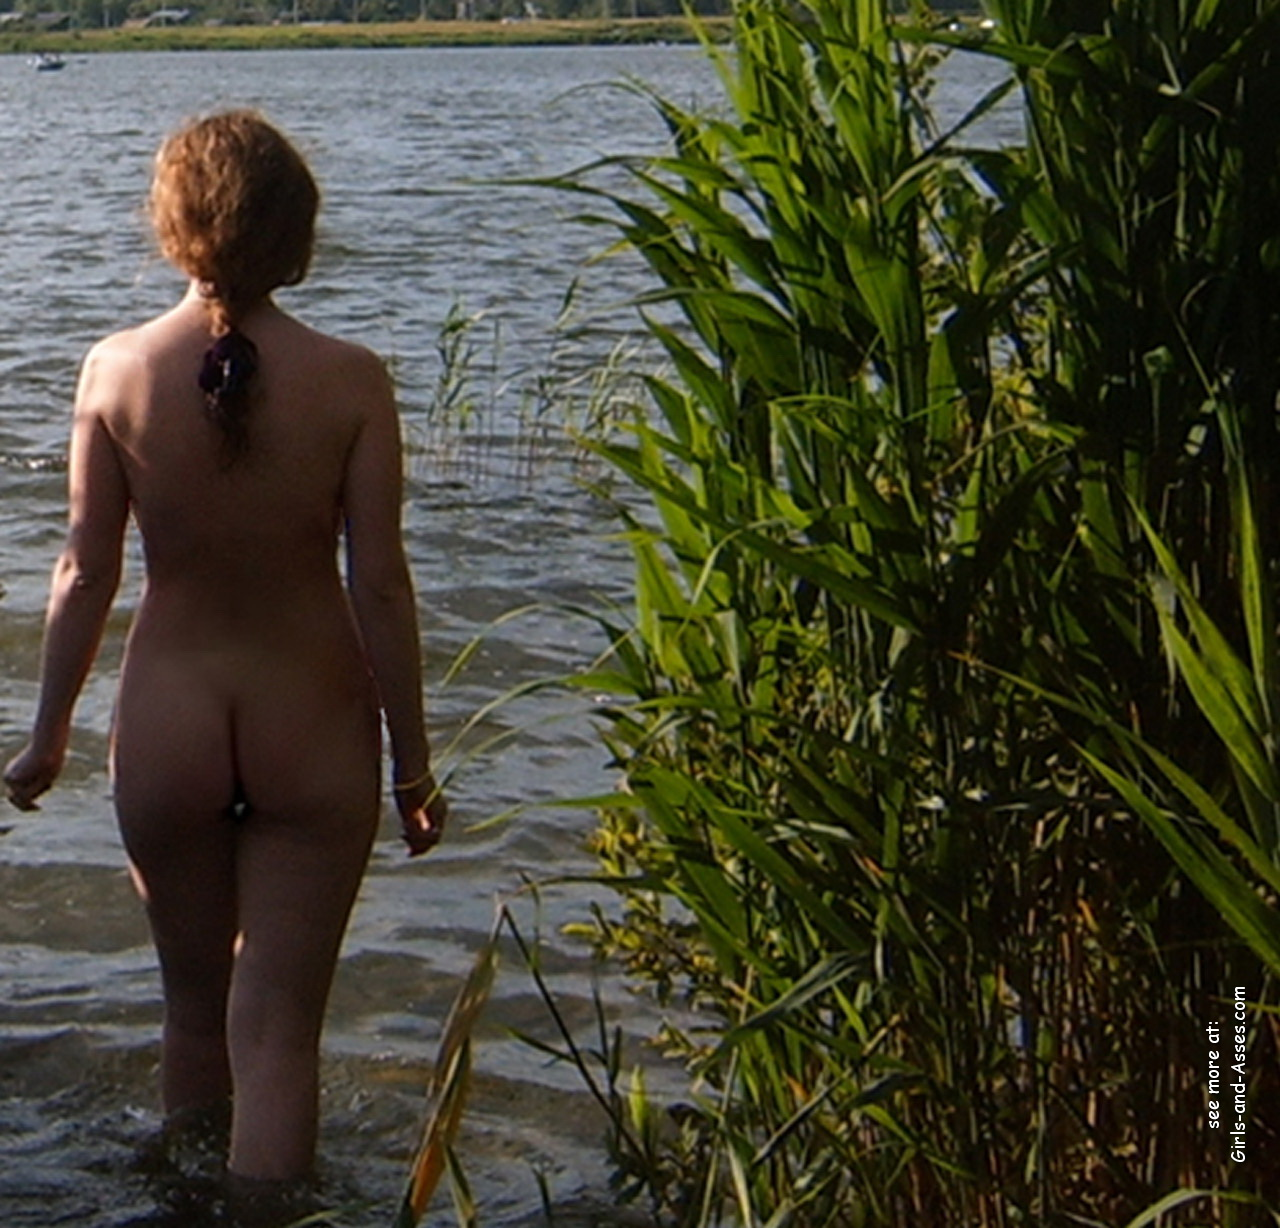 naked girl with cute butt on the river photo 04743